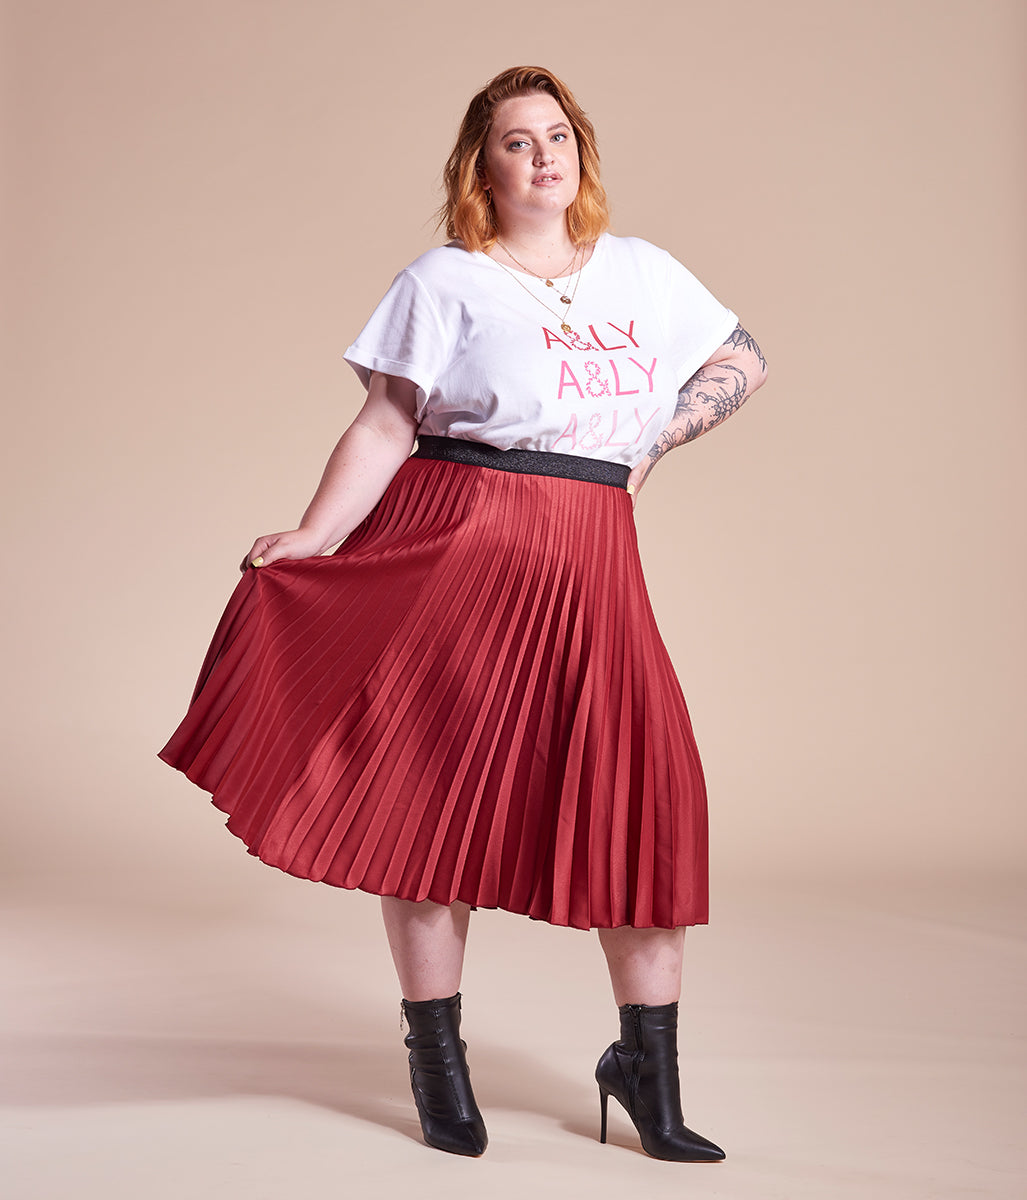 Laden Sie das Bild in den Galerie-Viewer, Favie Curvy Fashion A&LY T-Shirt weiß Plus Size Vorderansicht